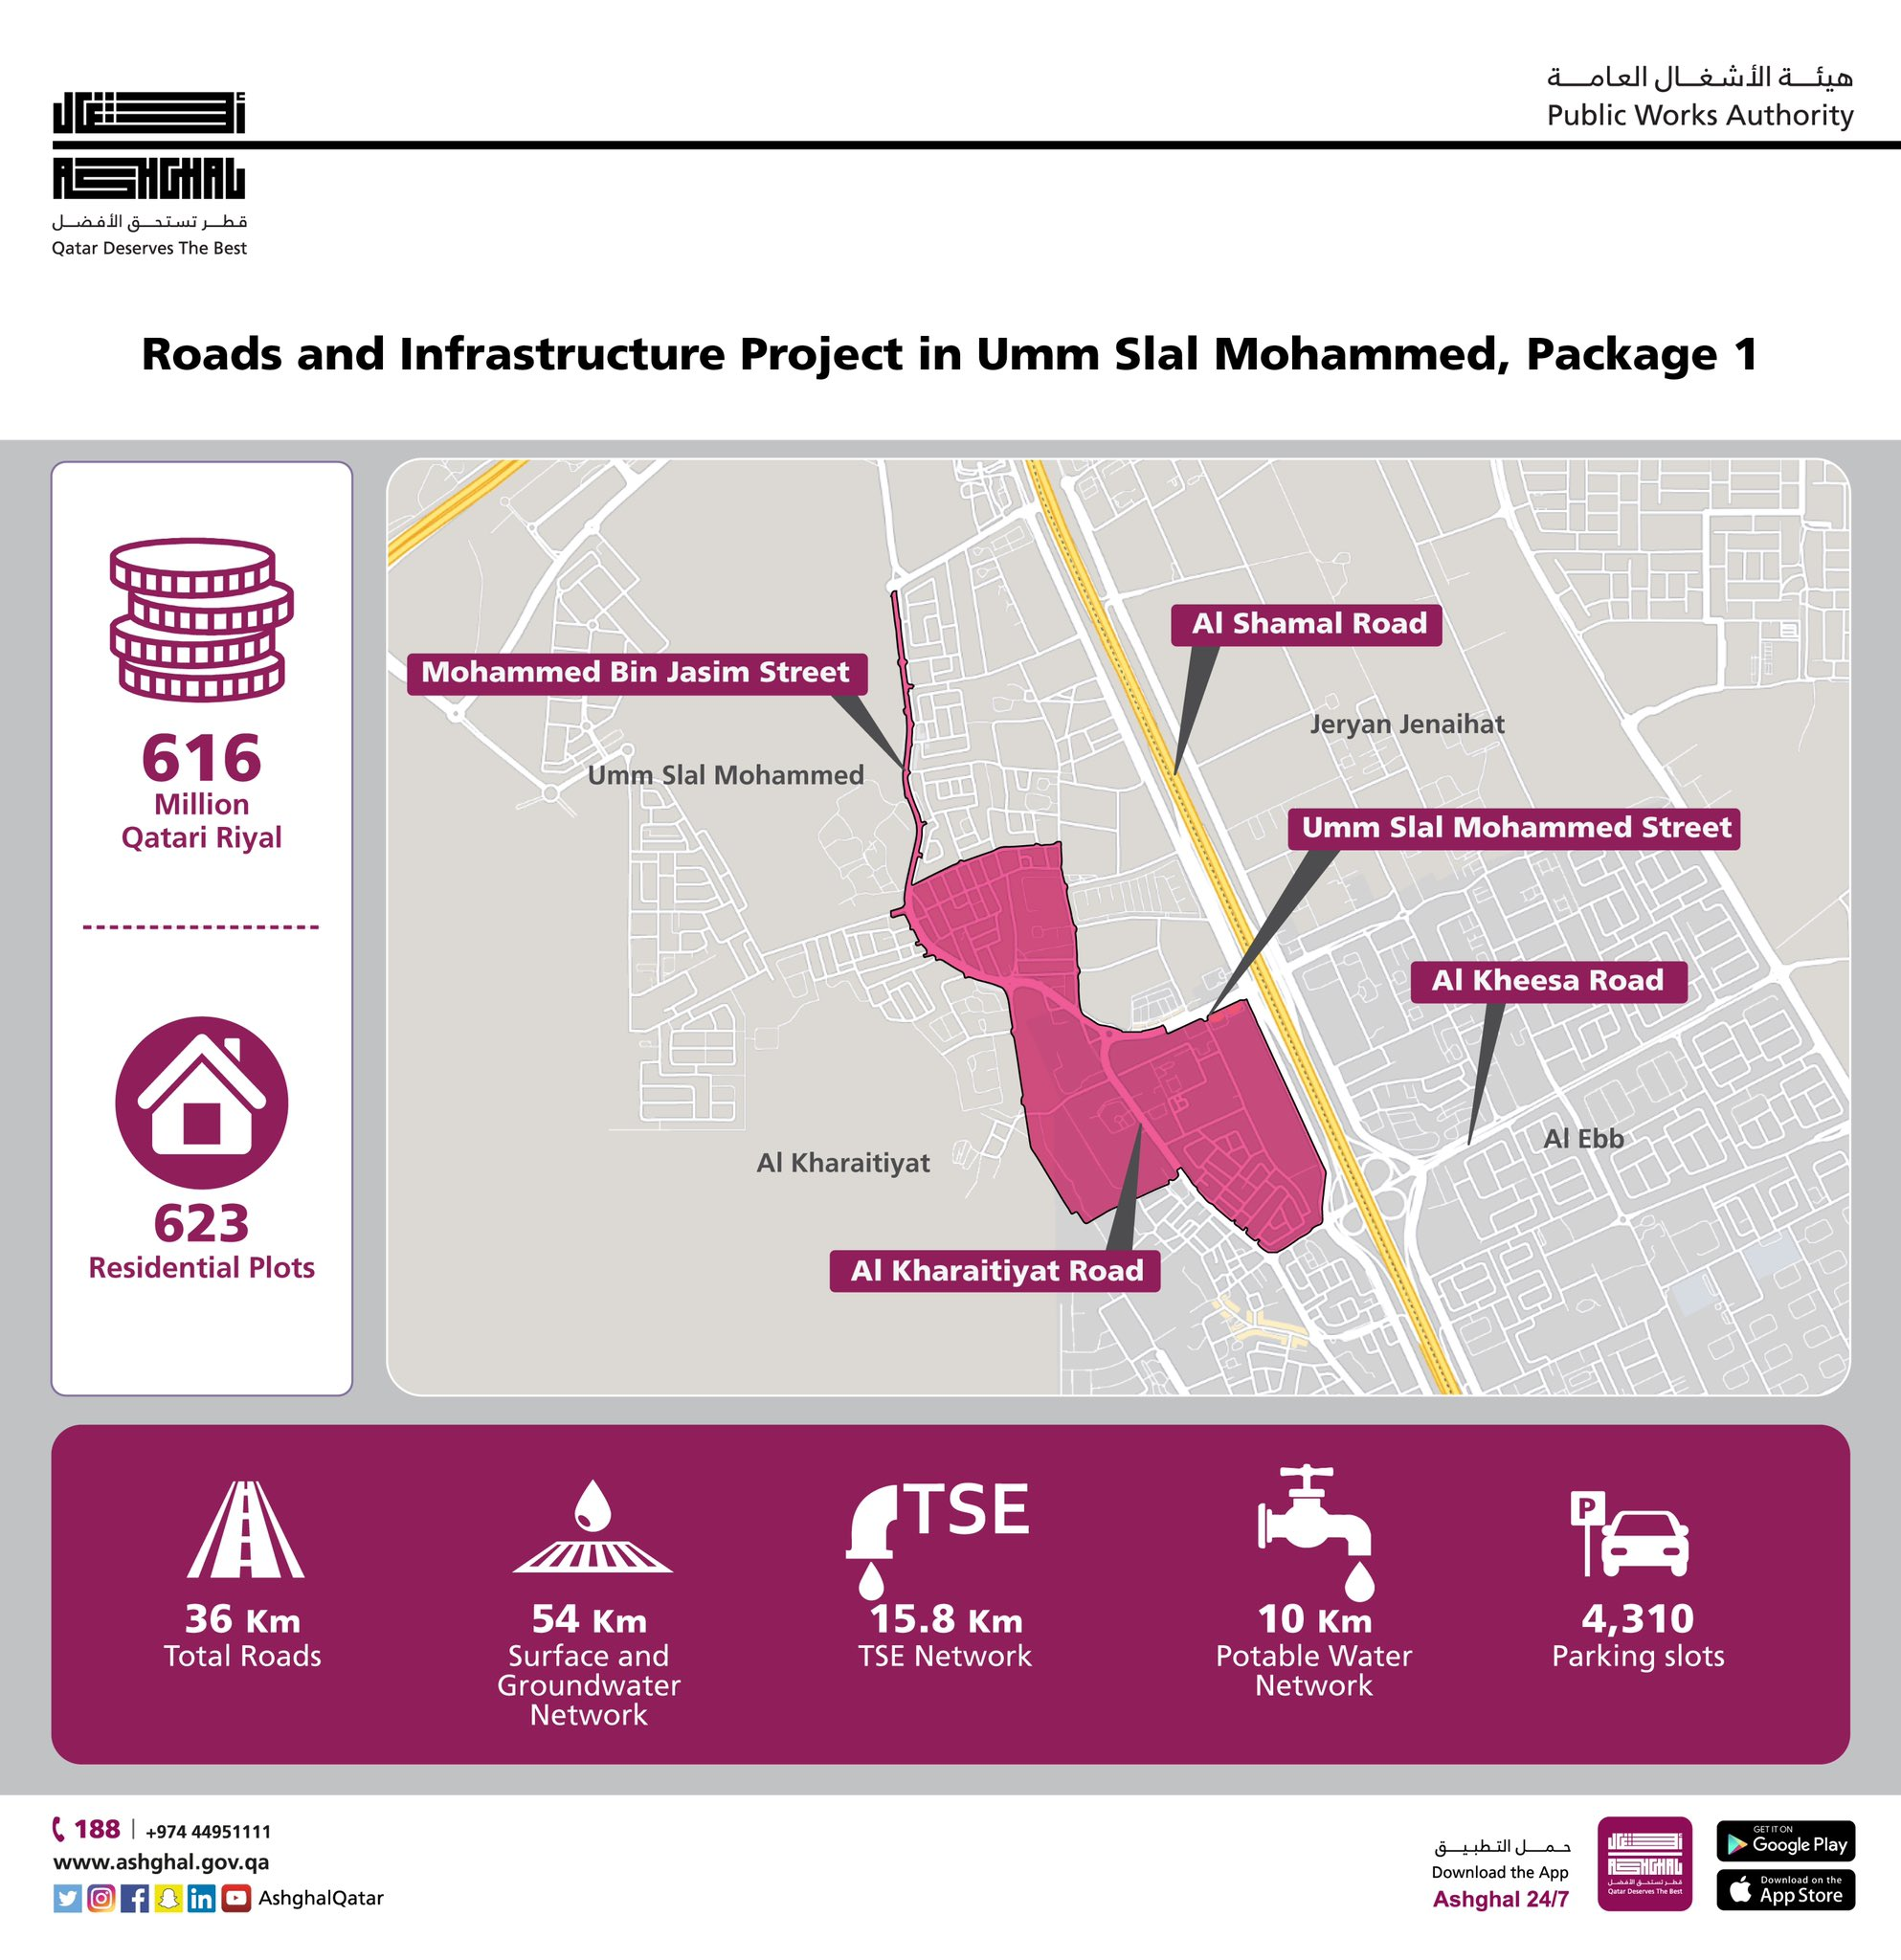 Ashghal launches QR616m infrastructure project in Umm Slal Mohammed